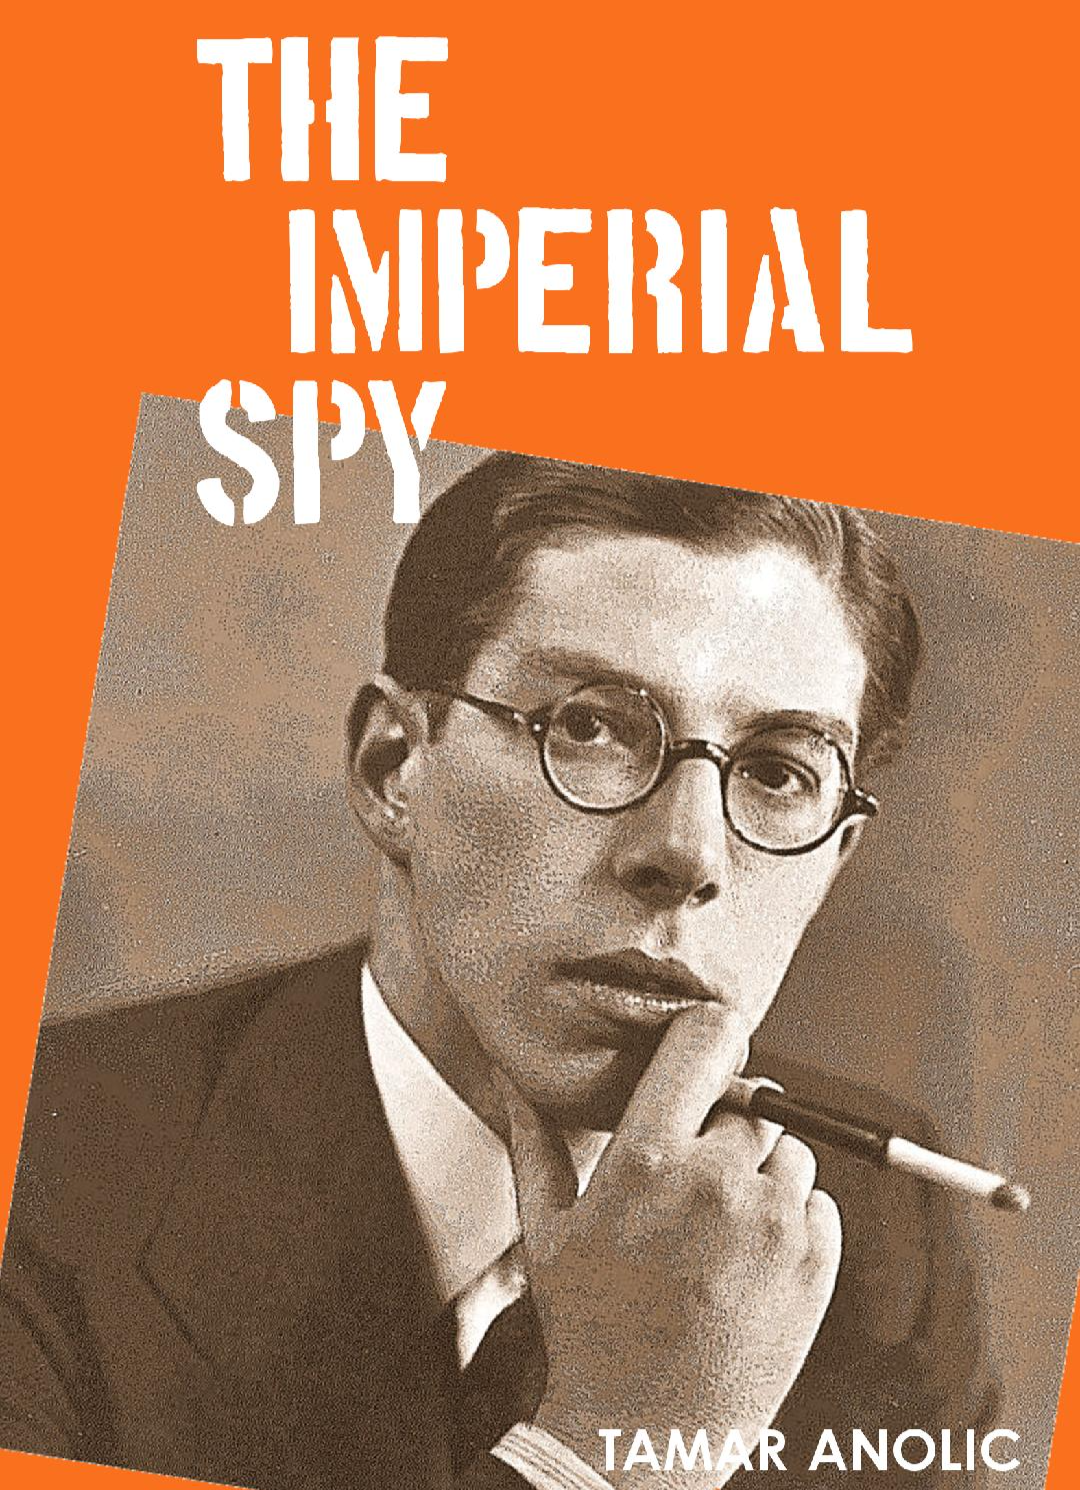 The Imperial Spy